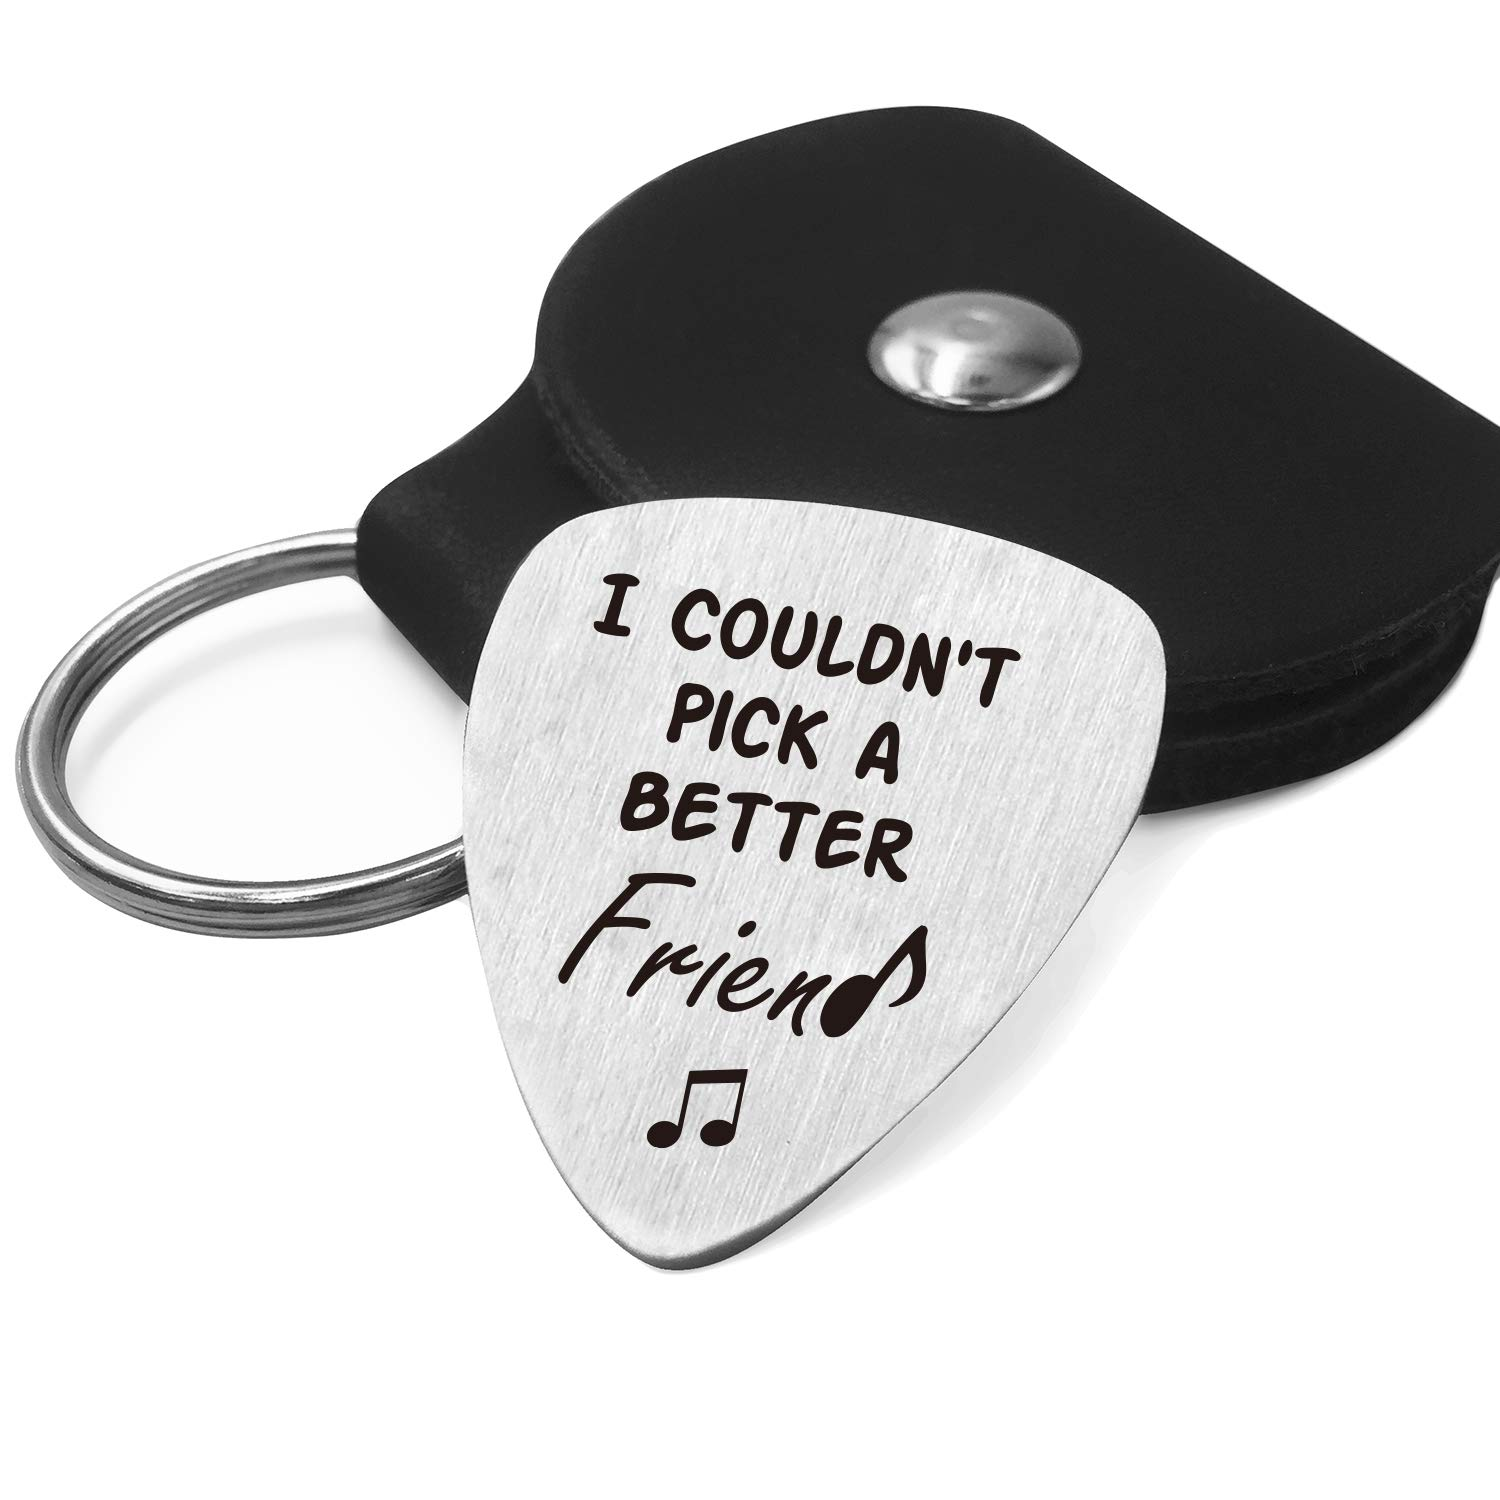 Best Friend Guitar Pick Gifts For Him Men Stainless Steel Guitar Pick With Guitar Pick Holder Case Friendship Gift Ideas For Friends Graduation Birthday Valentines Christmas Gifts Amazon Com Au Musical Instruments